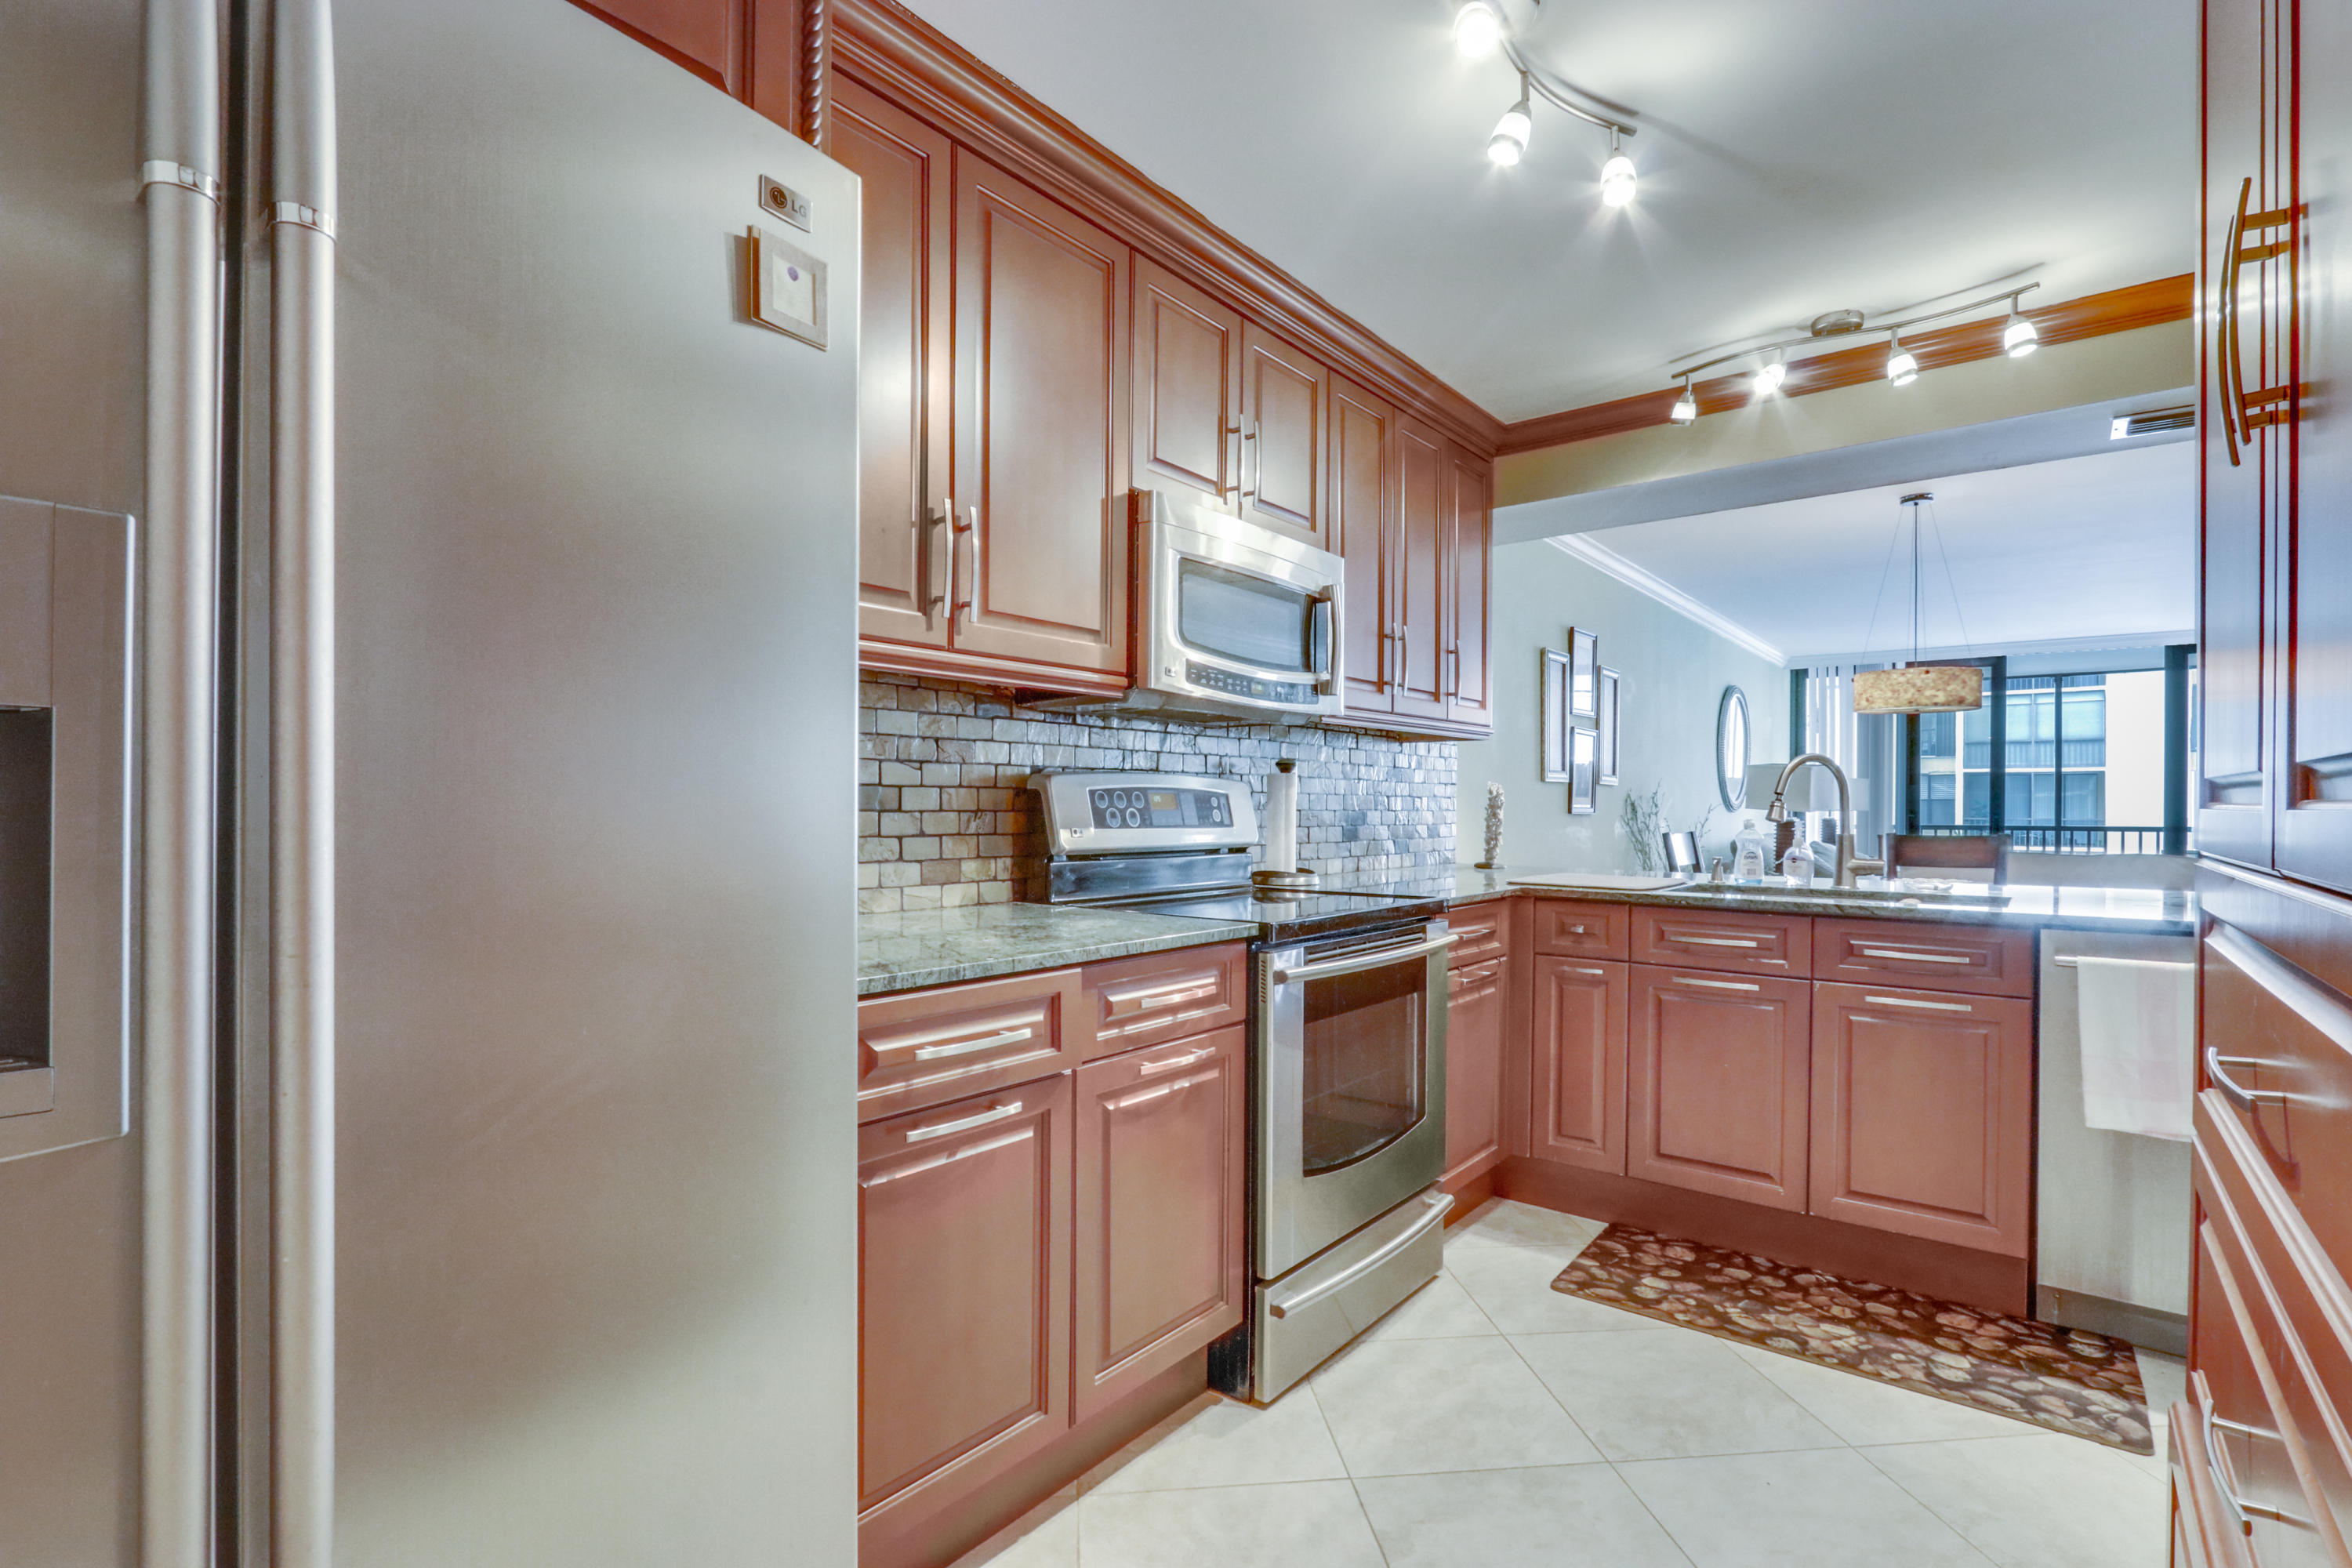 It is rare to find an updated waterfront 2/2 condo with Intracoastal views in the beautiful community of Boca Bayou. Gorgeous kitchen with wood cabinets, stone look back splash, stainless steel appliances, and granite counter tops. Updated bathrooms. Walk in closet with washer and dryer so no need to save your quarters! Kick back and relax while enjoying the views from your very own screened in balcony. Gated community features pools, gym, tennis, boat docks, BBQ areas, ocean access and more! Conveniently close to Mizner park, beaches, highways, shopping, dining and more! If you don't take a look at this home soon, there's a good chance that another Buyer will make an offer, & you'll probably spend weeks locked in your bedroom crying over it. Schedule a showing ASAP...you'll be glad u did! *** The special assessment (which has not been billed to the owners yet) for 8-206 is estimated to be $29,917.78. The special assessment will be billed to the owners 90 days after the construction project is complete. Which is estimated to be late 2019 or early 2020. ***The Seller Has Agreed to Pay Full Assessment***